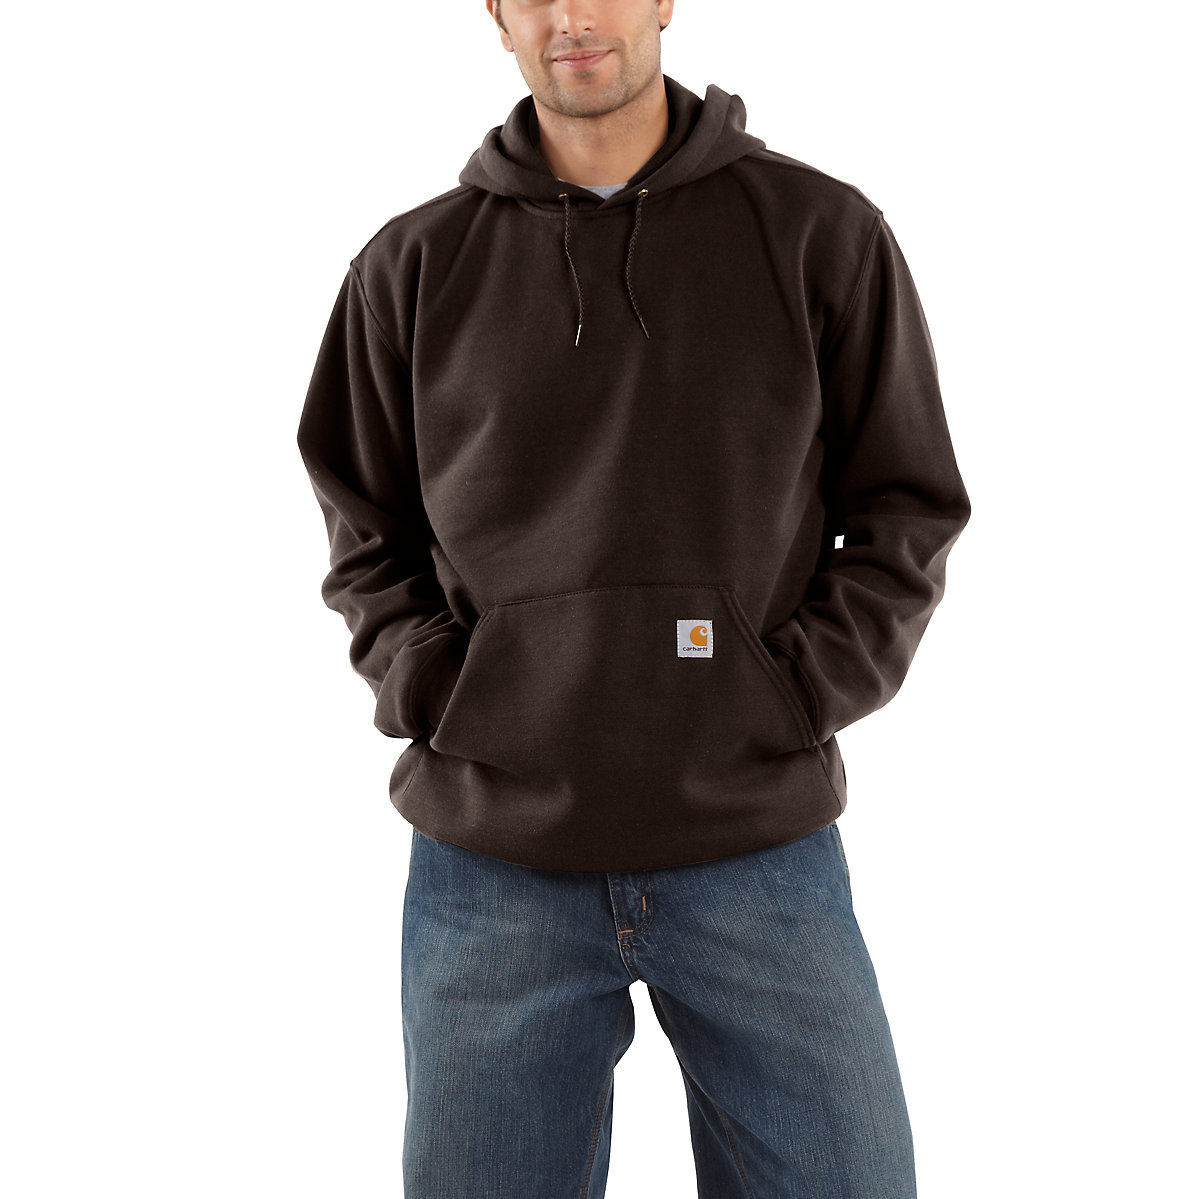 men 39 s midweight hooded pullover sweatshirt k121 carhartt. Black Bedroom Furniture Sets. Home Design Ideas